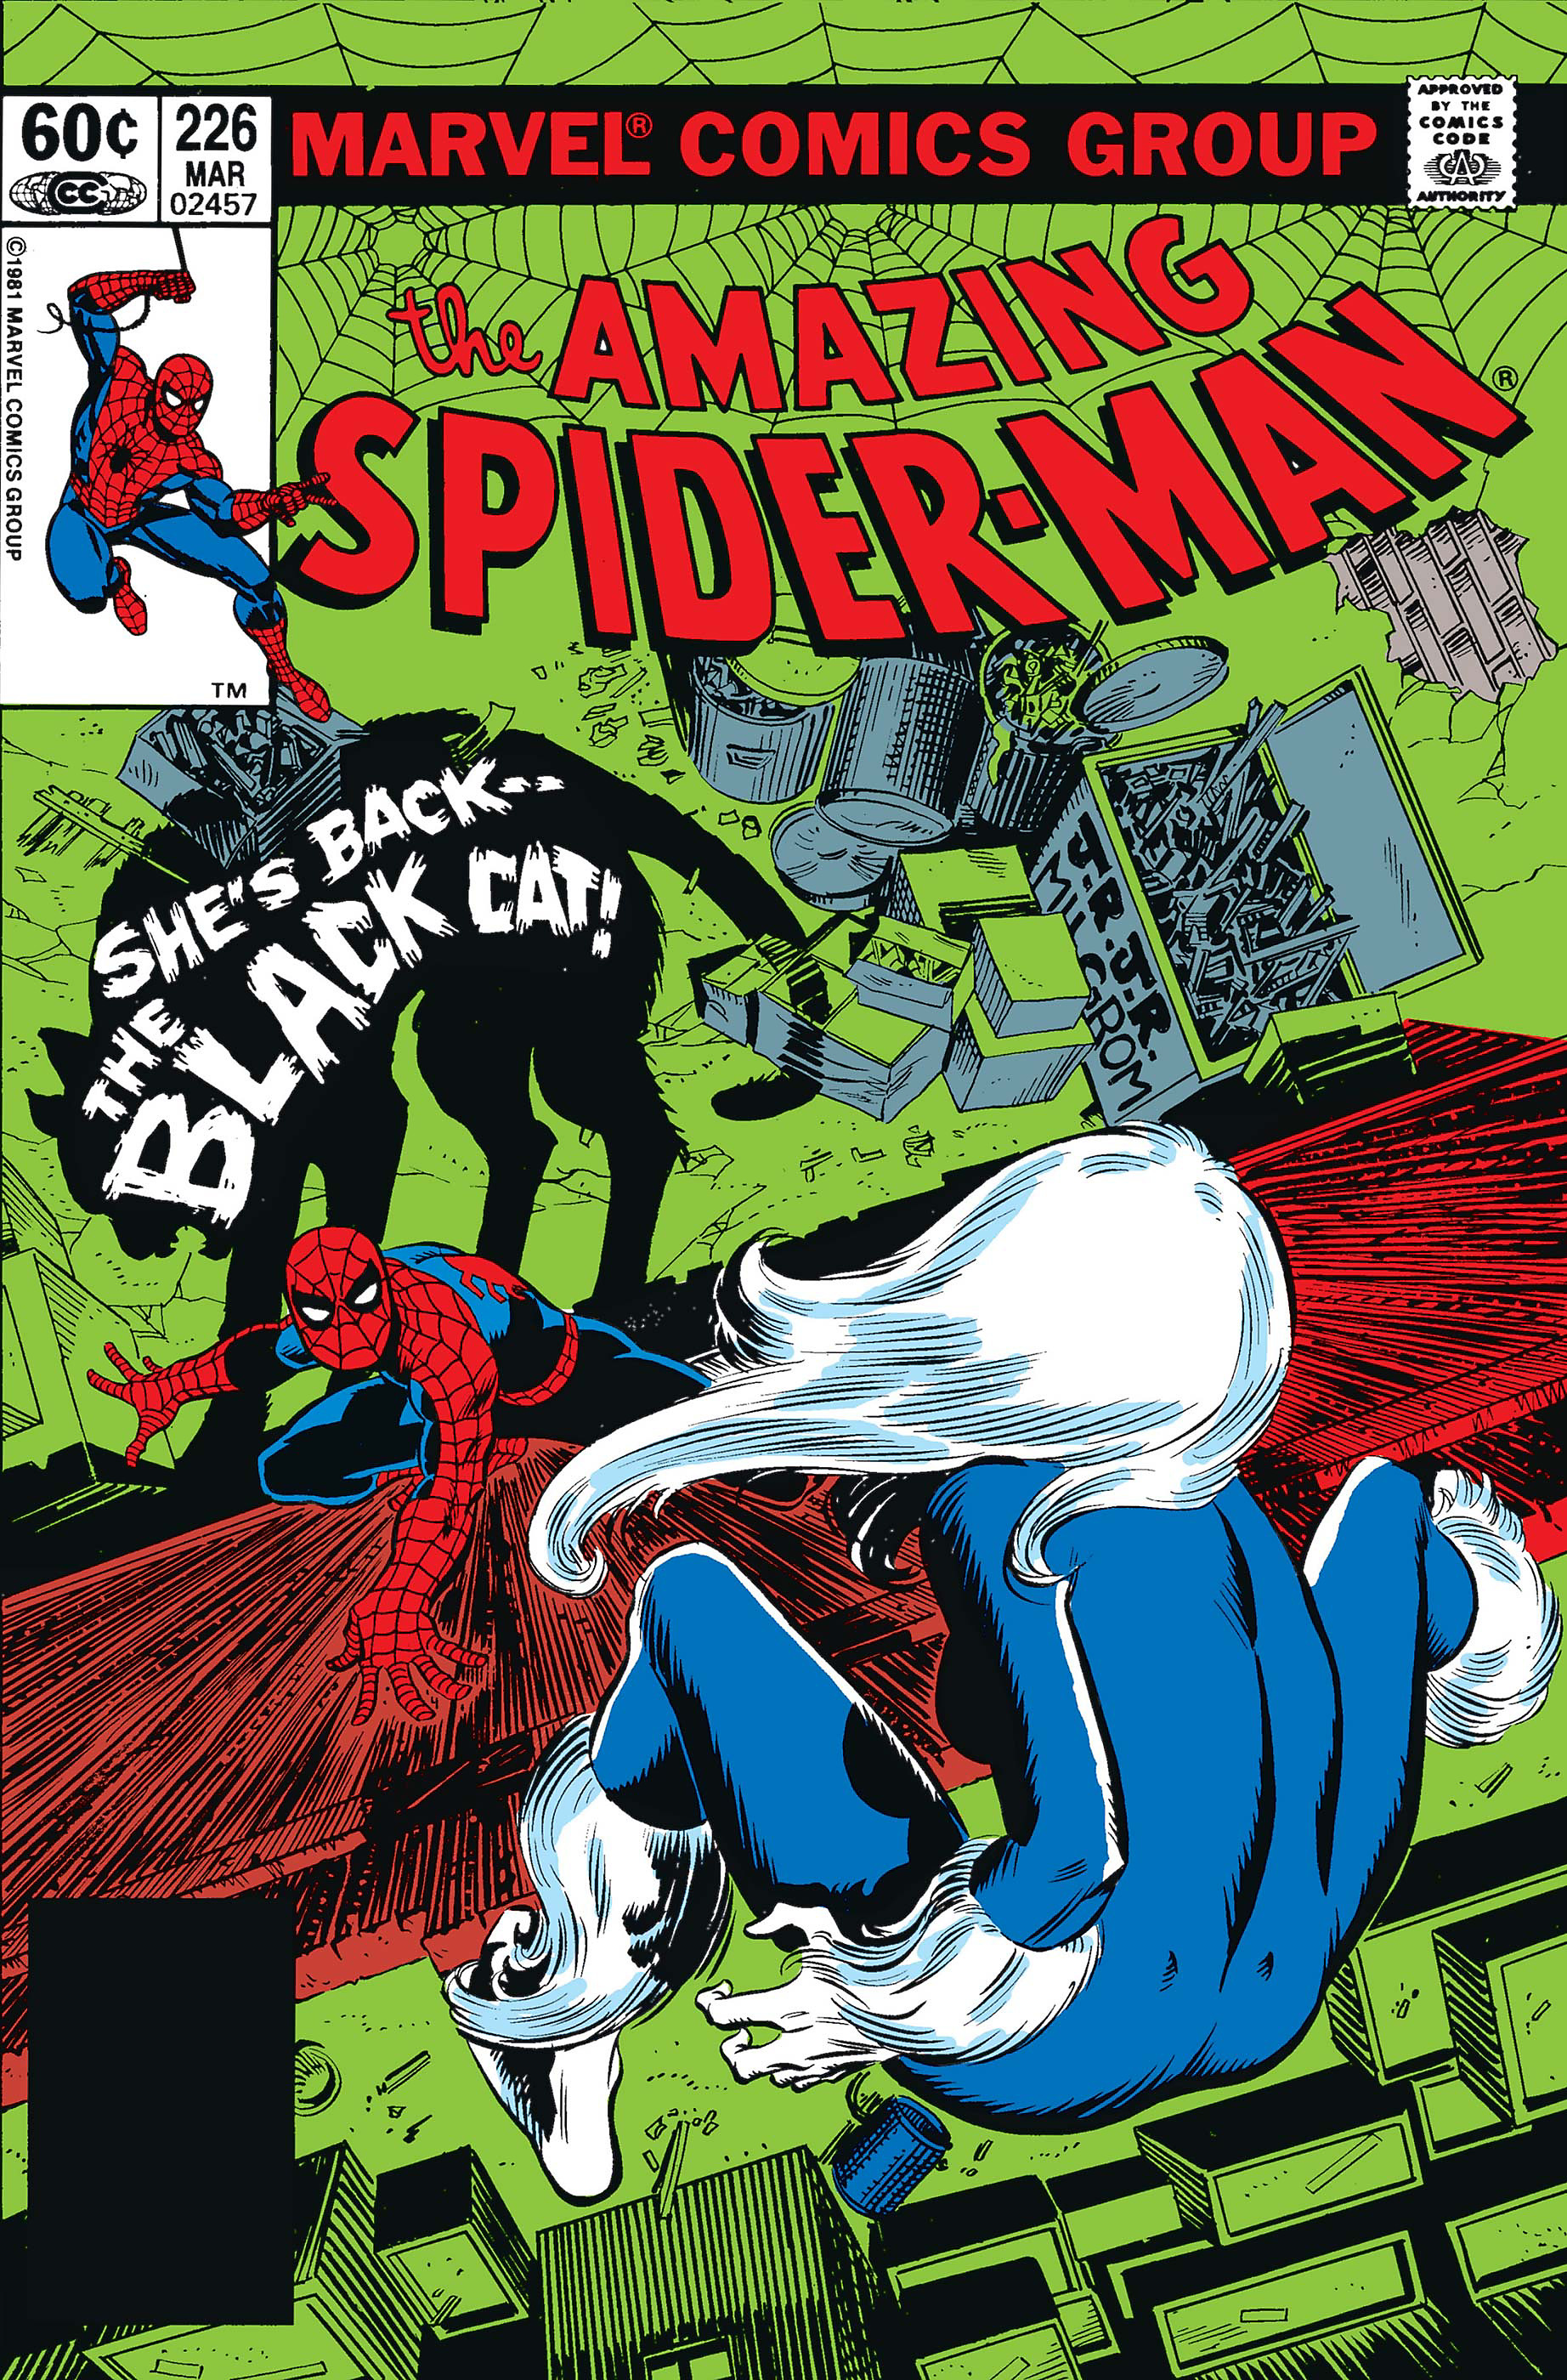 Amazing Spider-Man (1963) #226